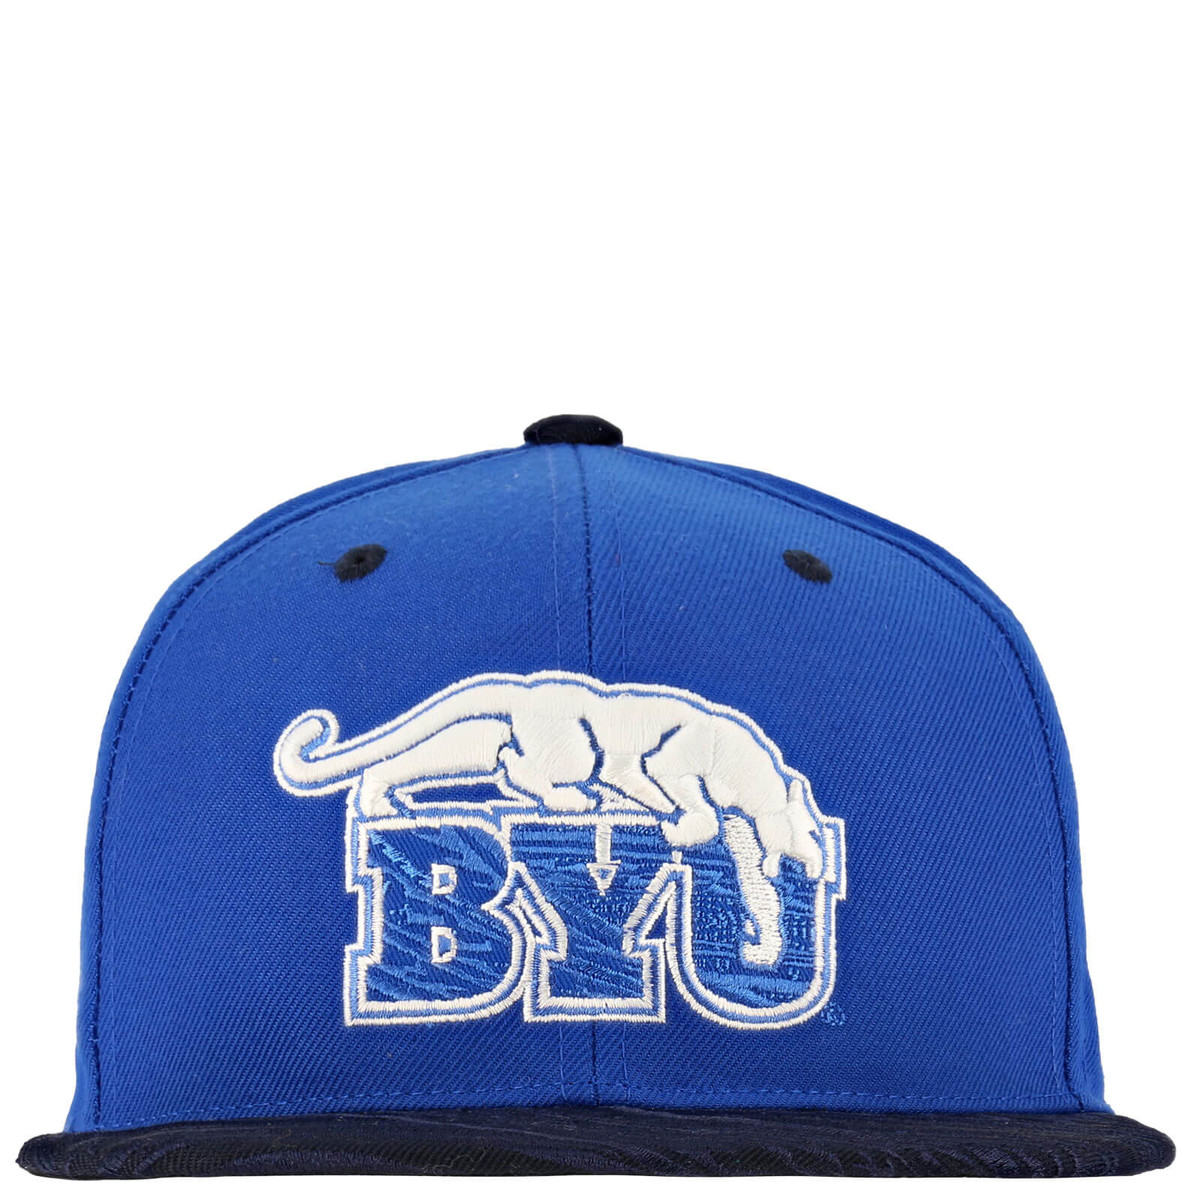 92c769adb9023 Retro Cougar Over BYU Hapuna BYU Flat Bill Hat - Zephyr